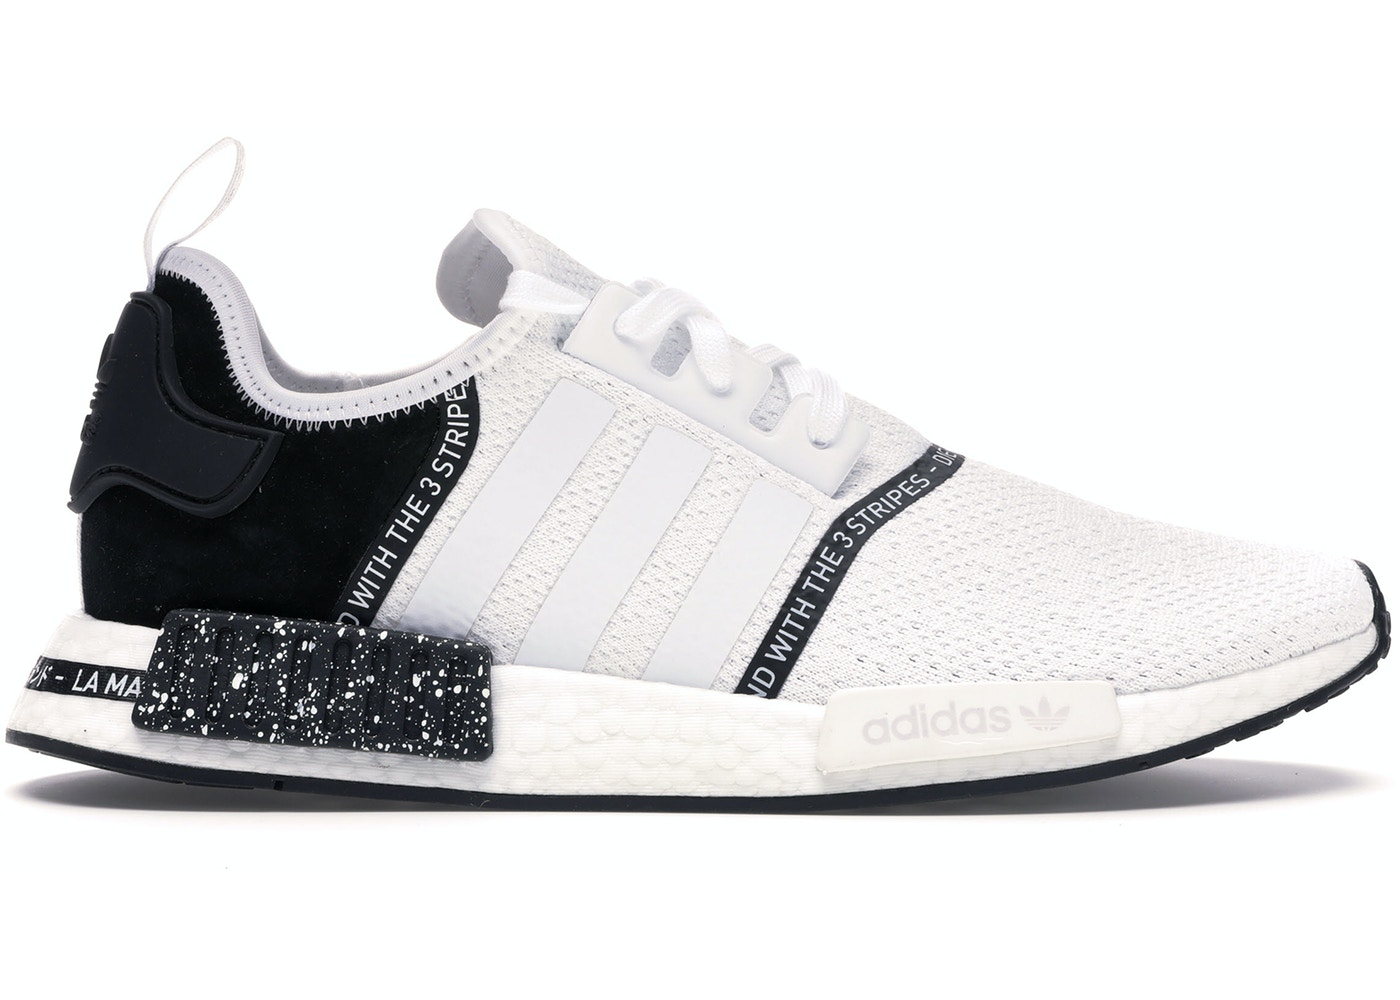 new style 9f50c 5cd4a adidas NMD R1 Speckle Pack White